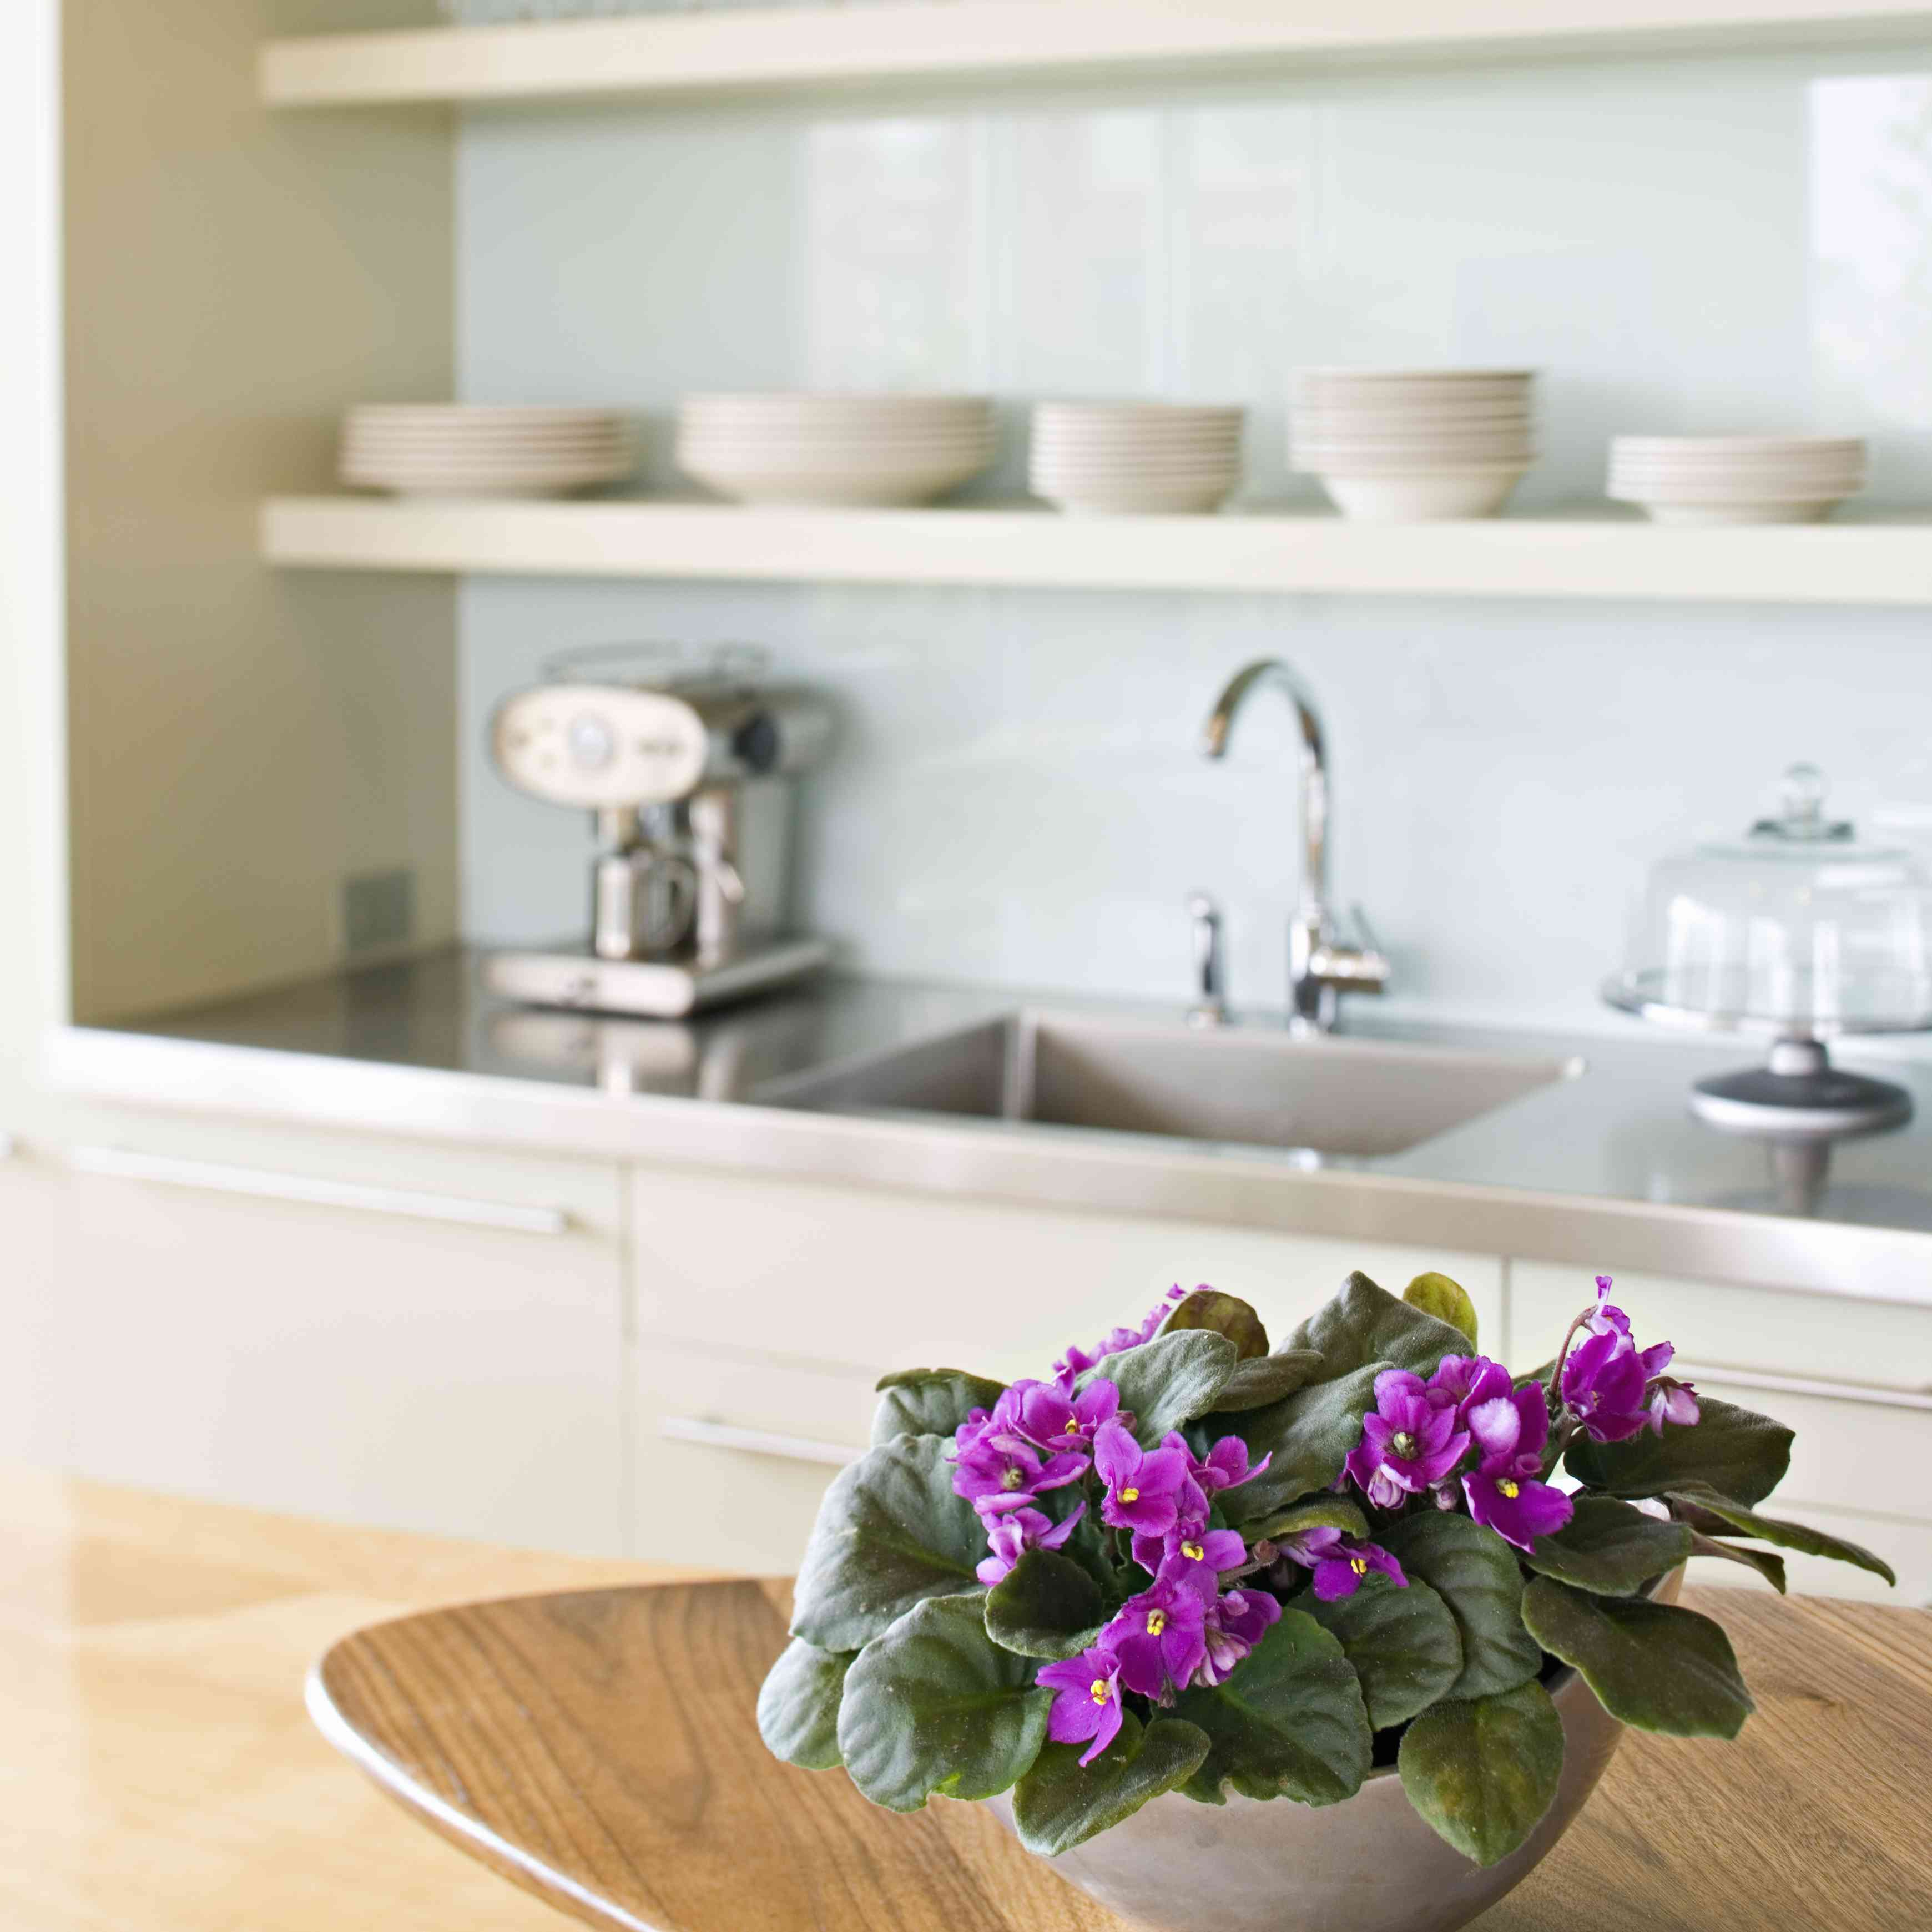 African violet on kitchen counter